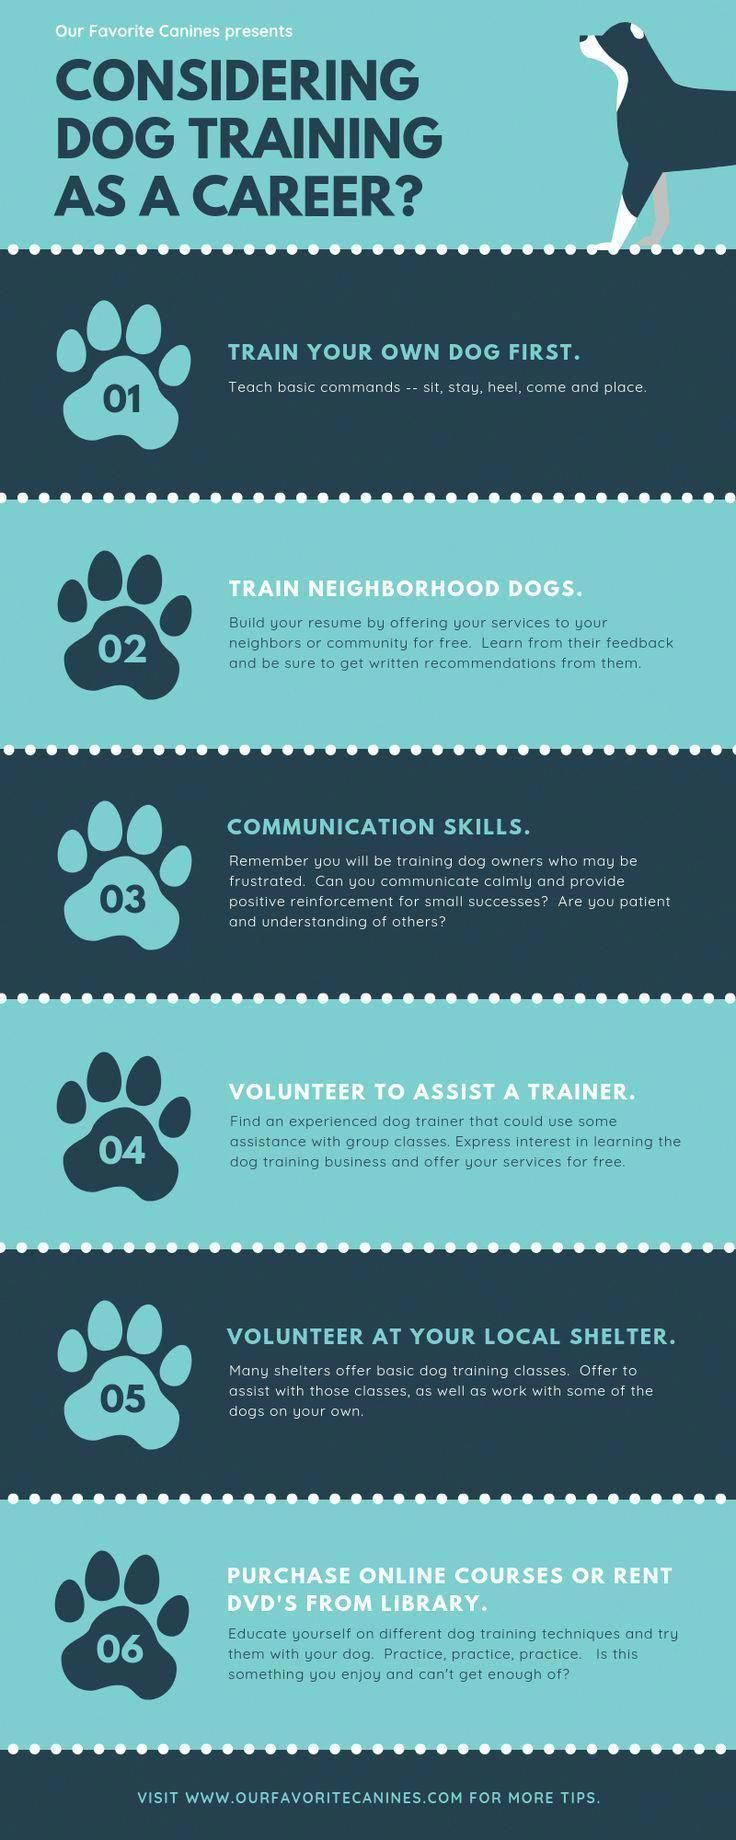 Discreet trained best dog training tricks visit our office